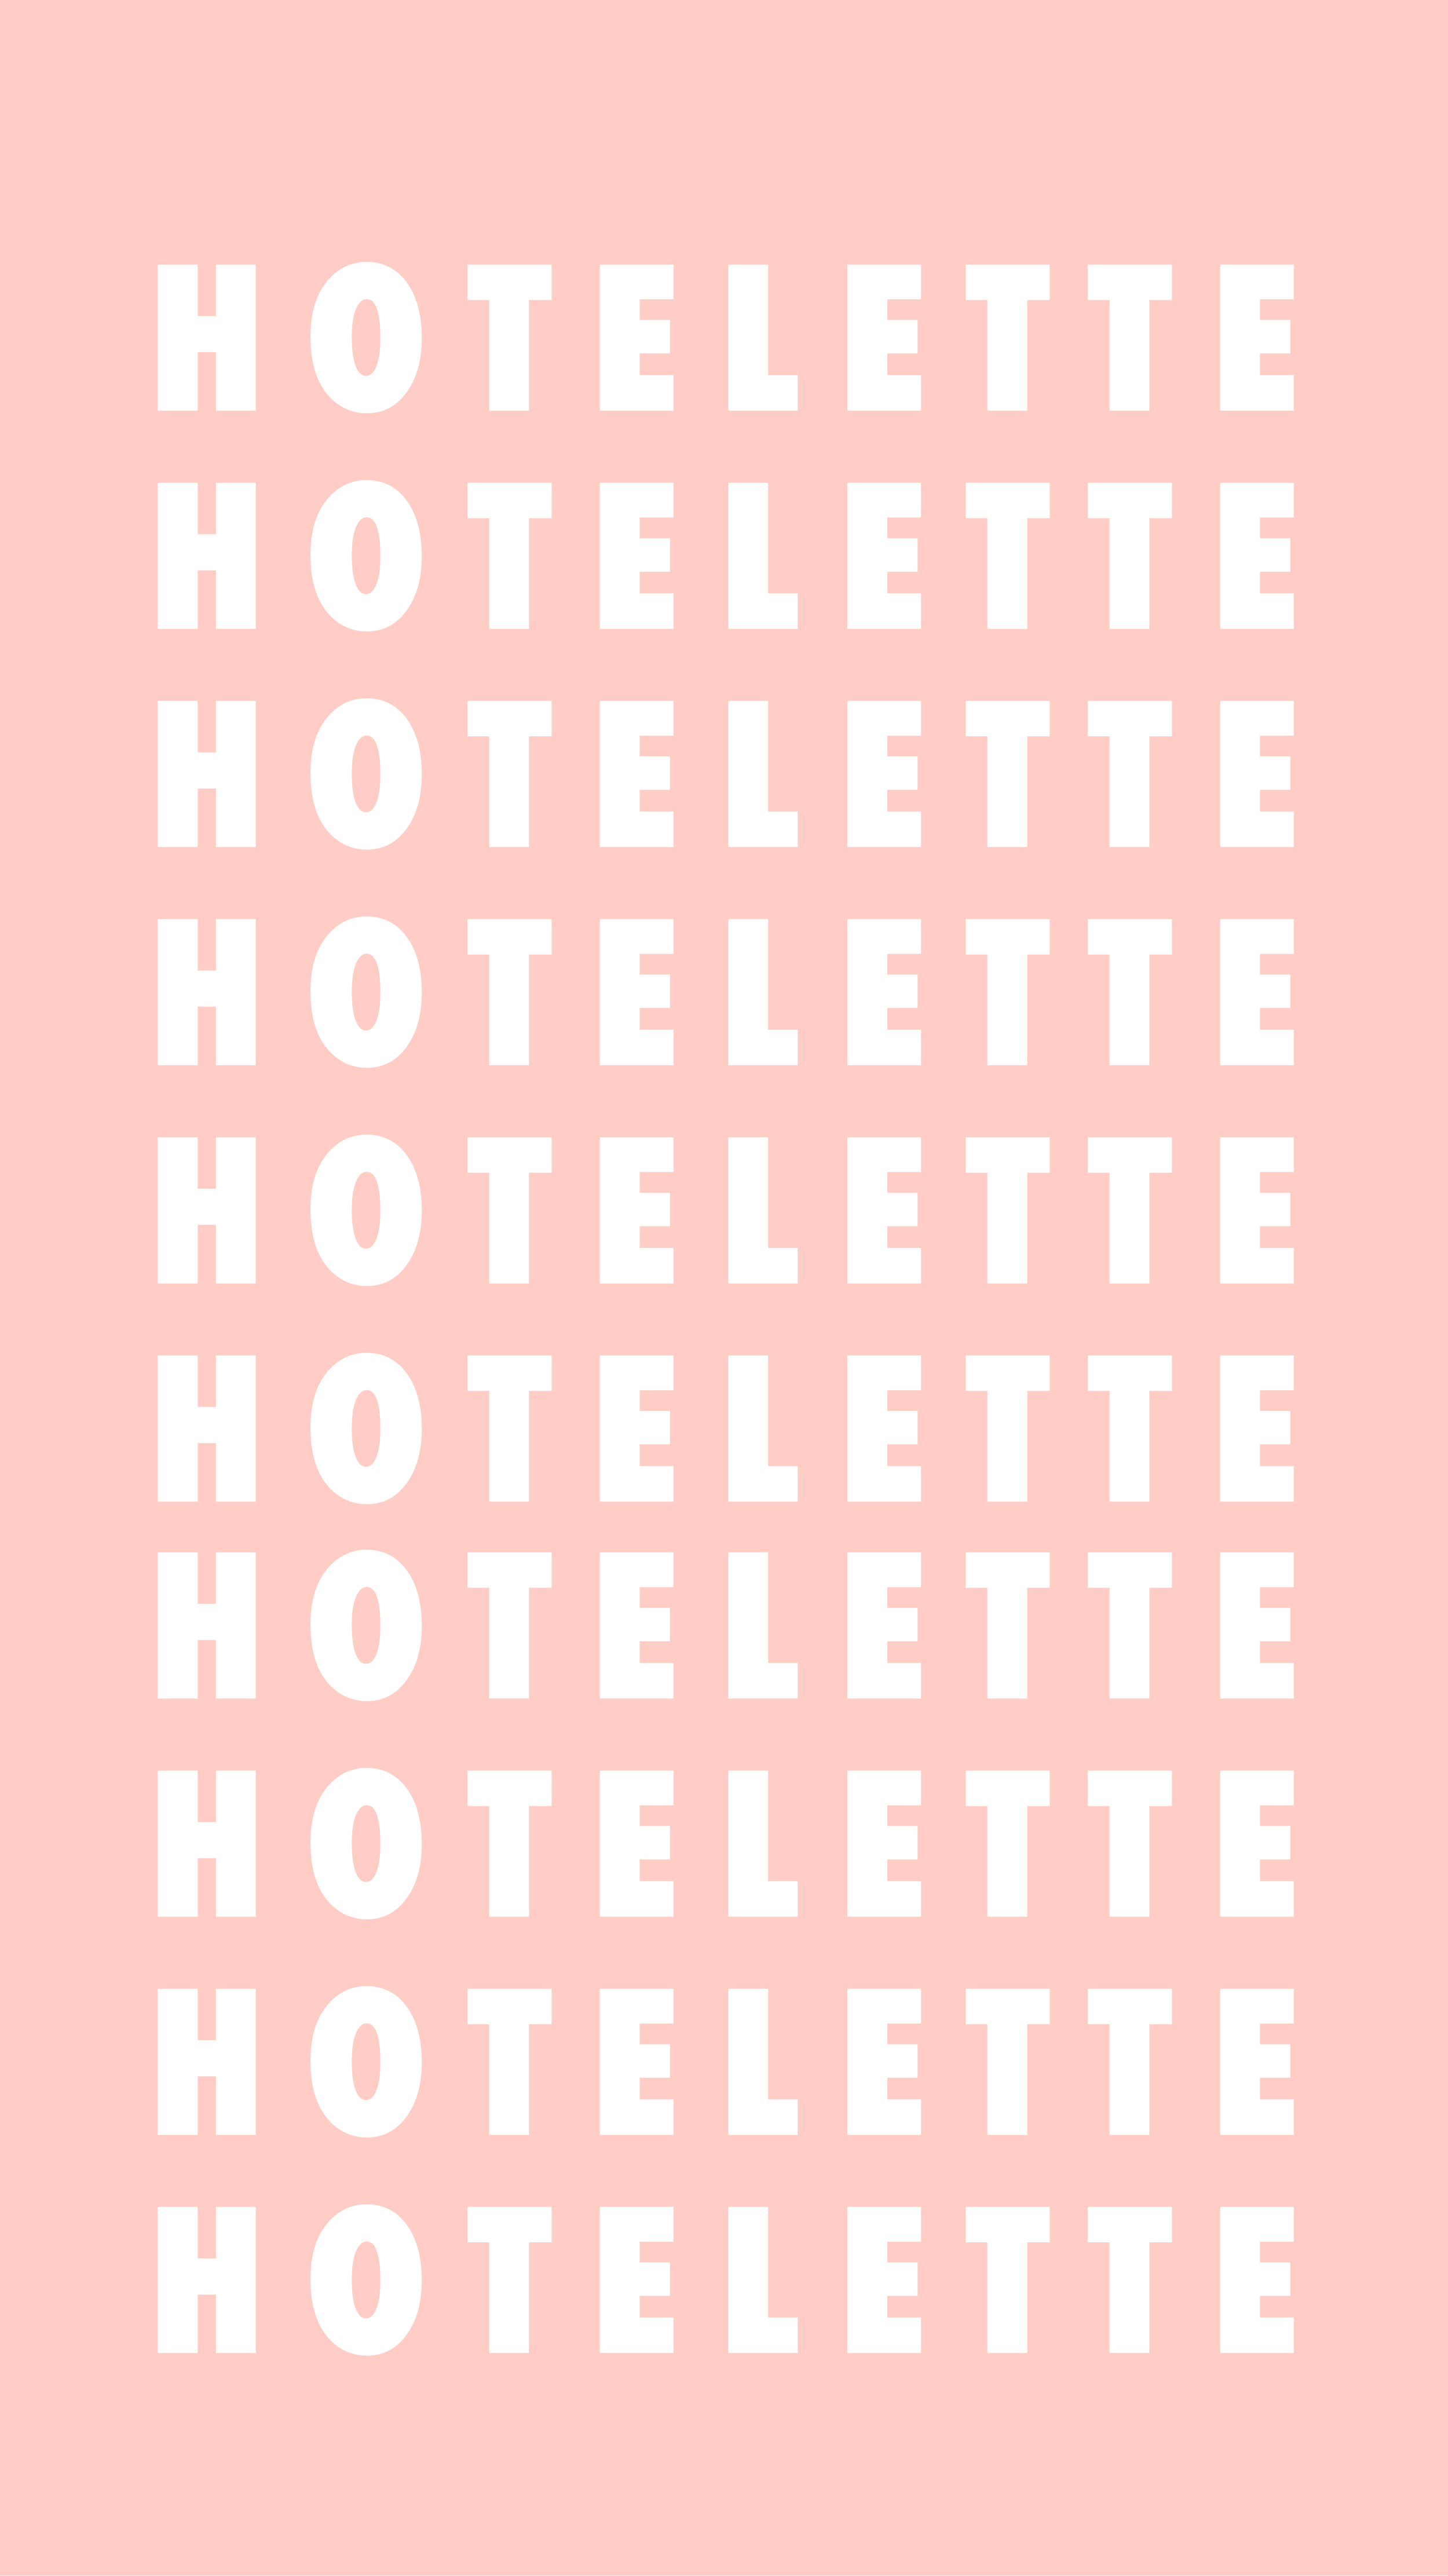 HOTELette Posters-01.png